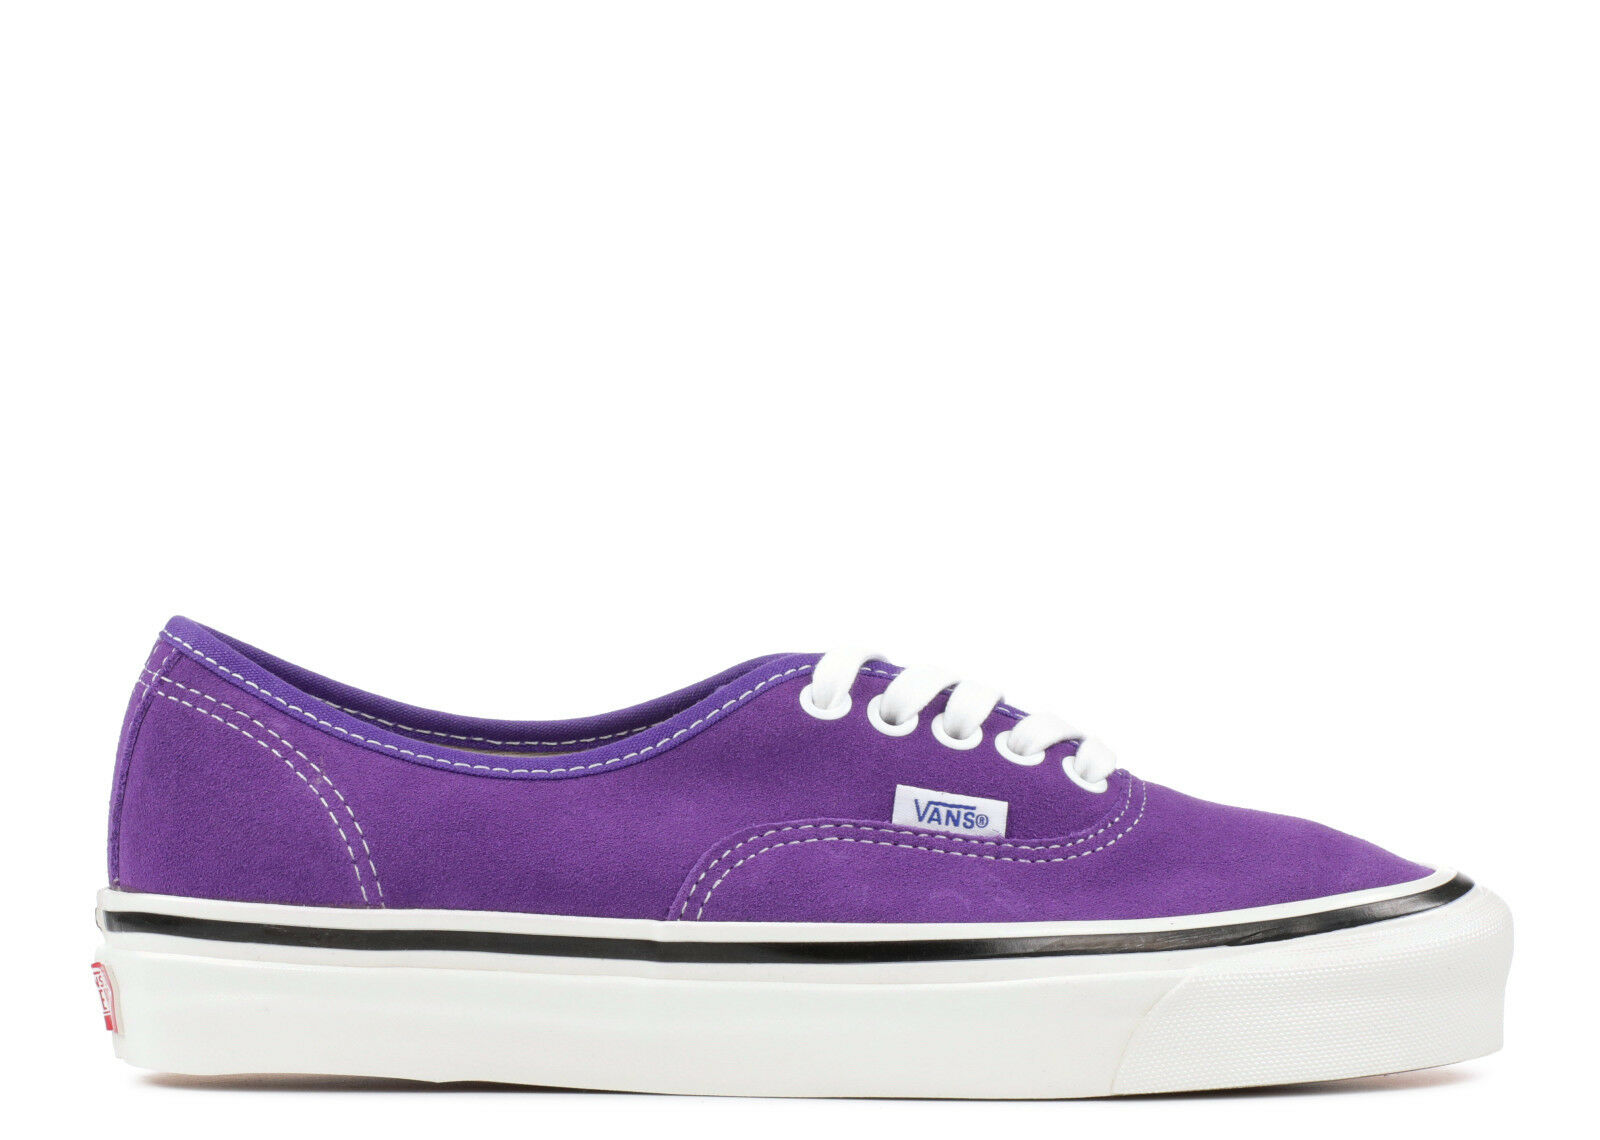 VANS DX AUTHENTIC 44 SUEDE OGBR PURPLE NEW SZ 8-12 N0A38ENQSW ANAHEIM FACTORY